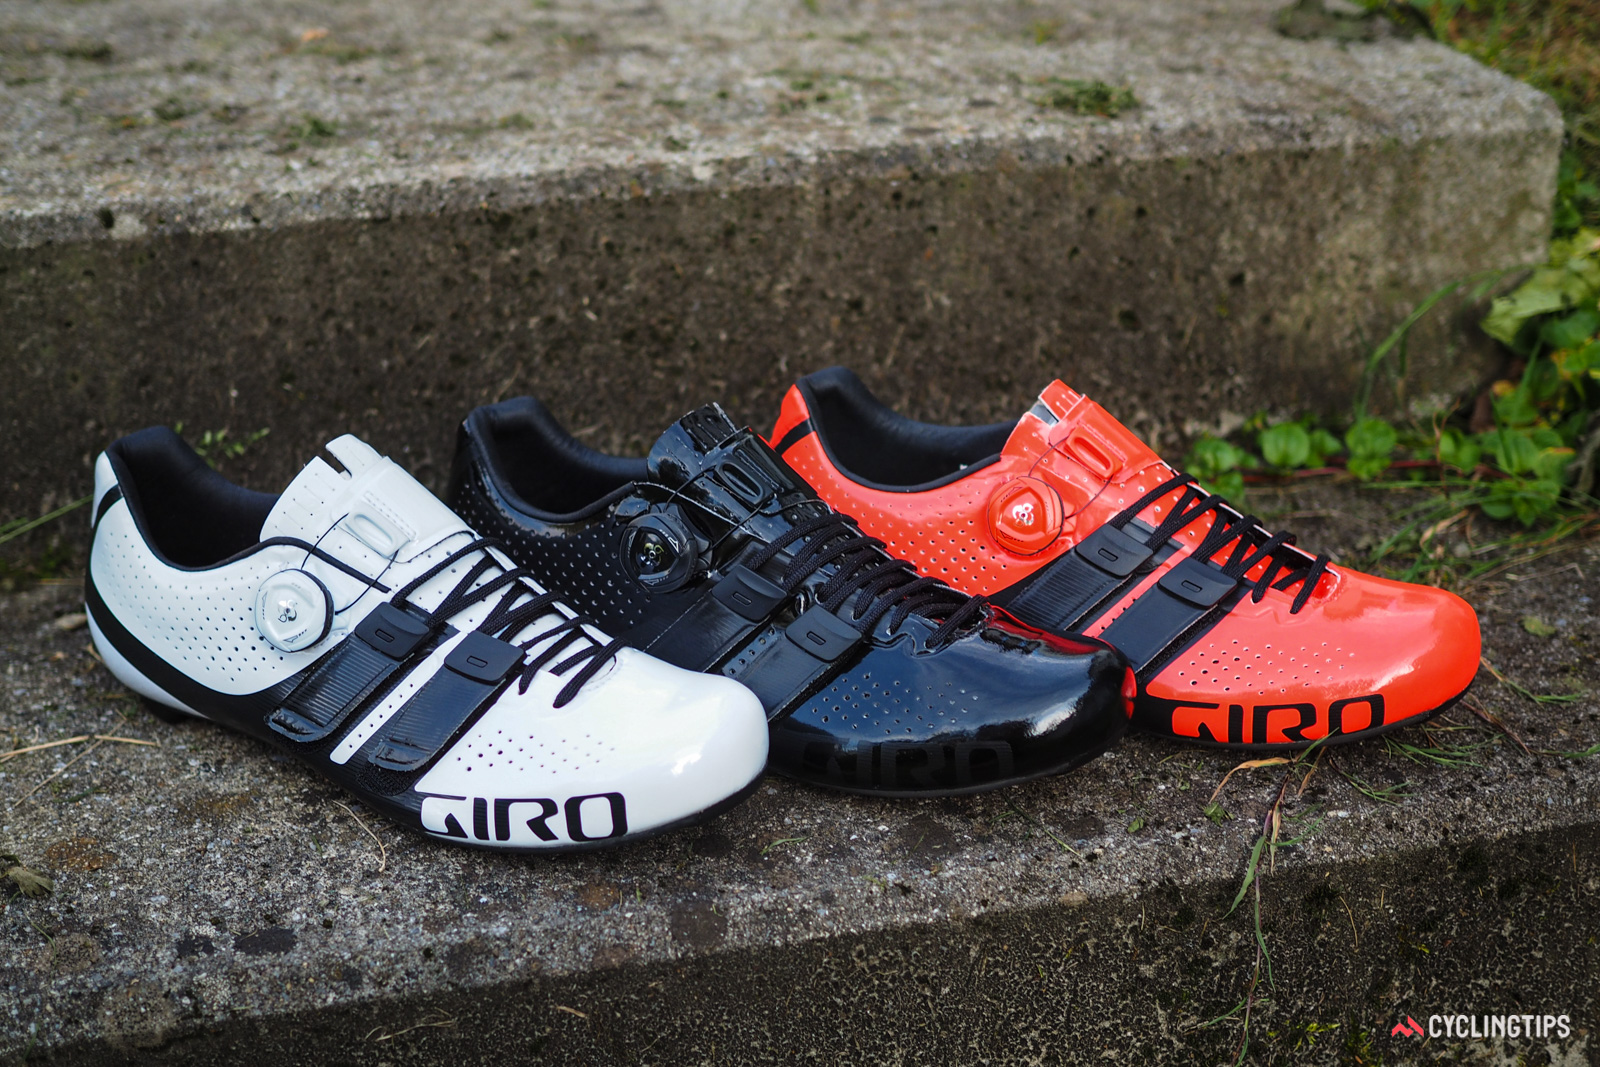 Giro will offer the new Factor Techlace in three different colors. Retail price will be US$350 / €350 when they begin arriving in shops in October. UK and AU pricing is TBC.